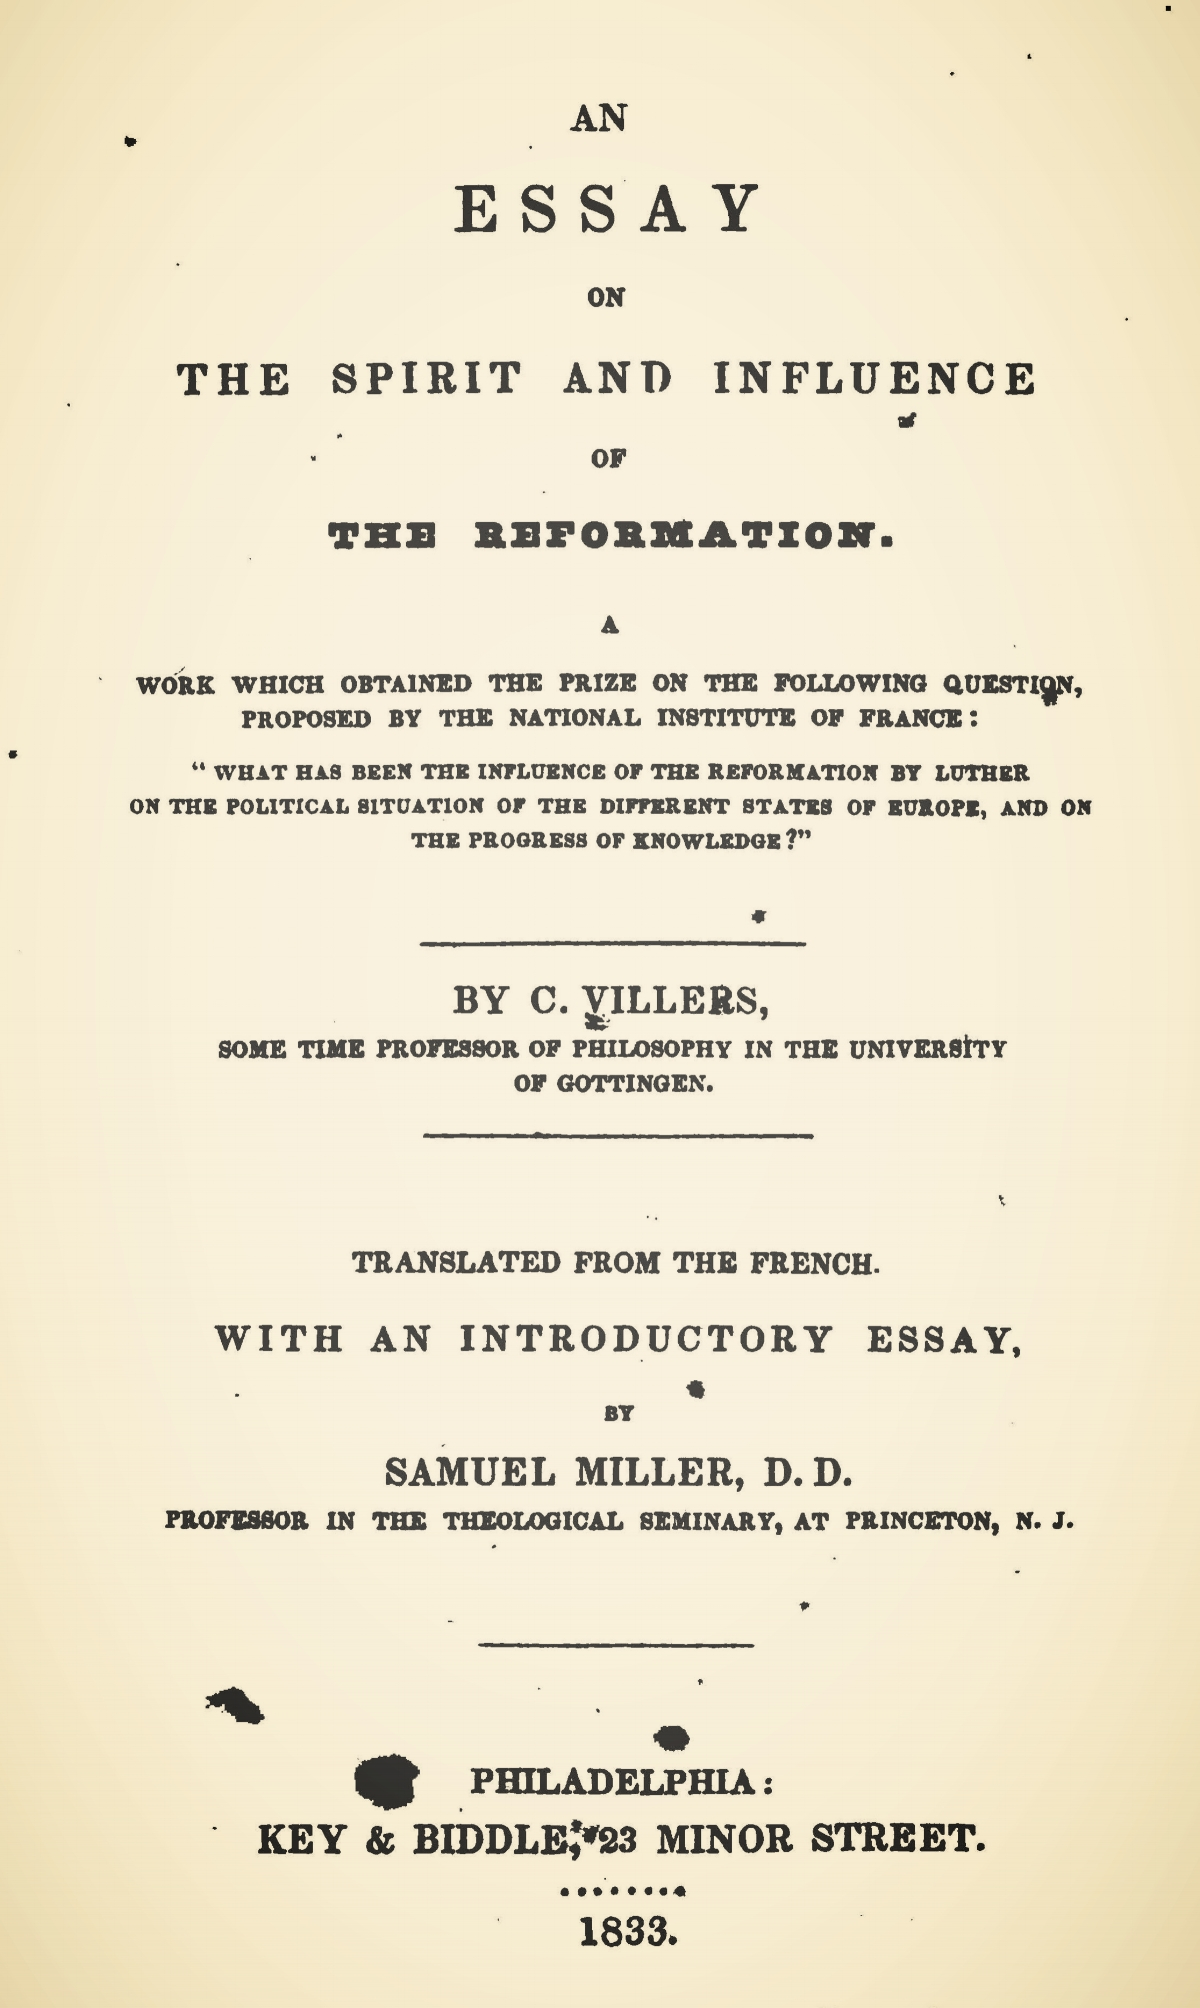 Miller, Samuel, Introductory Essay on An Essay on the Spirit and Influence of the Reformation Title Page.jpg